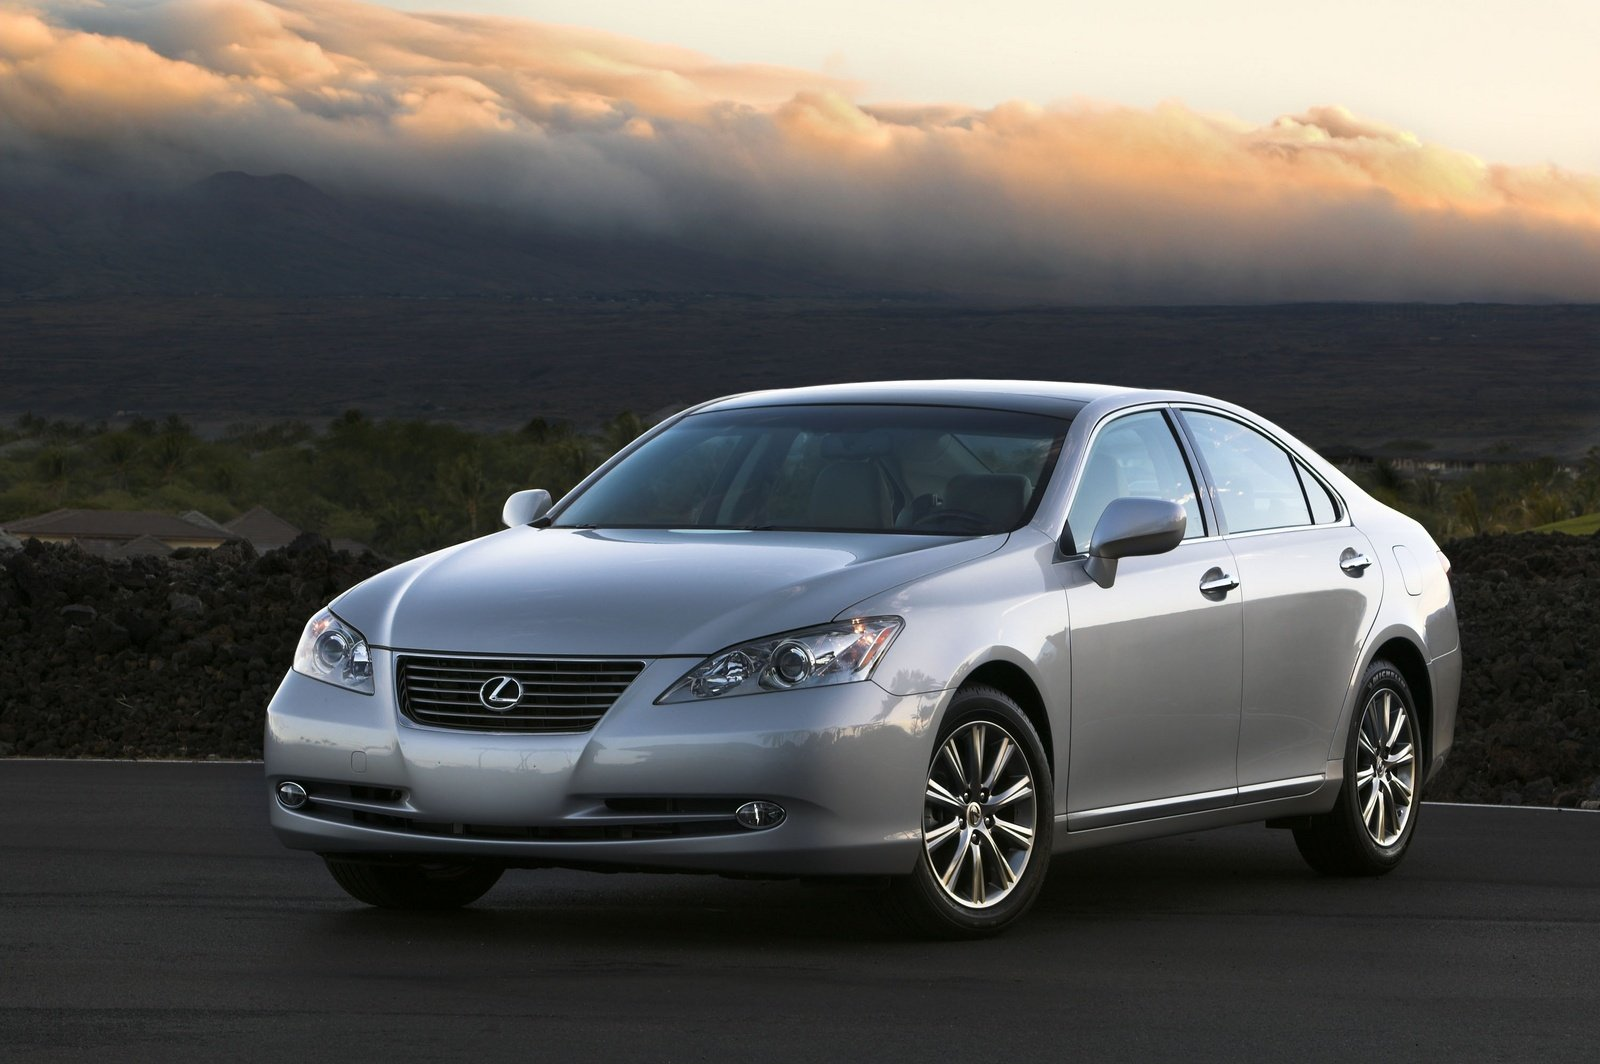 2007 lexus es350 review top speed. Black Bedroom Furniture Sets. Home Design Ideas